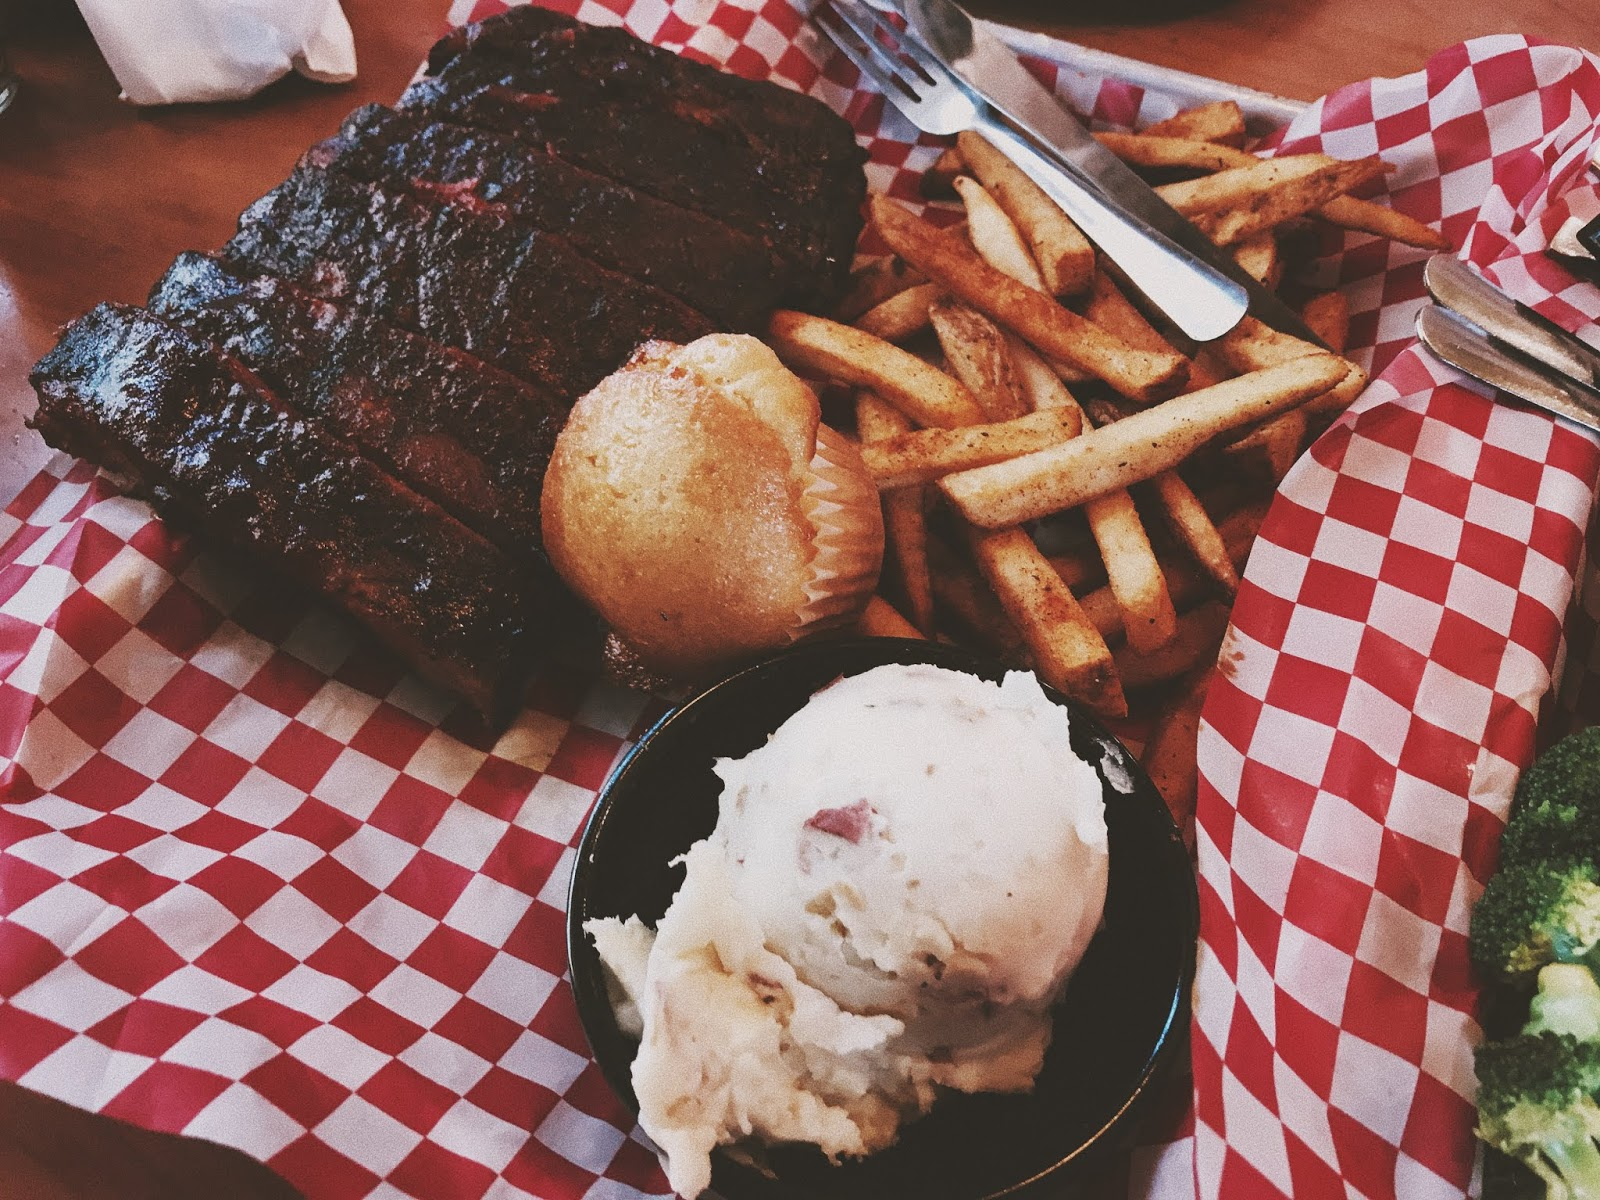 BBQ EATERY TO ADD TO YOUR SUMMER LIST | AESTE BLANC